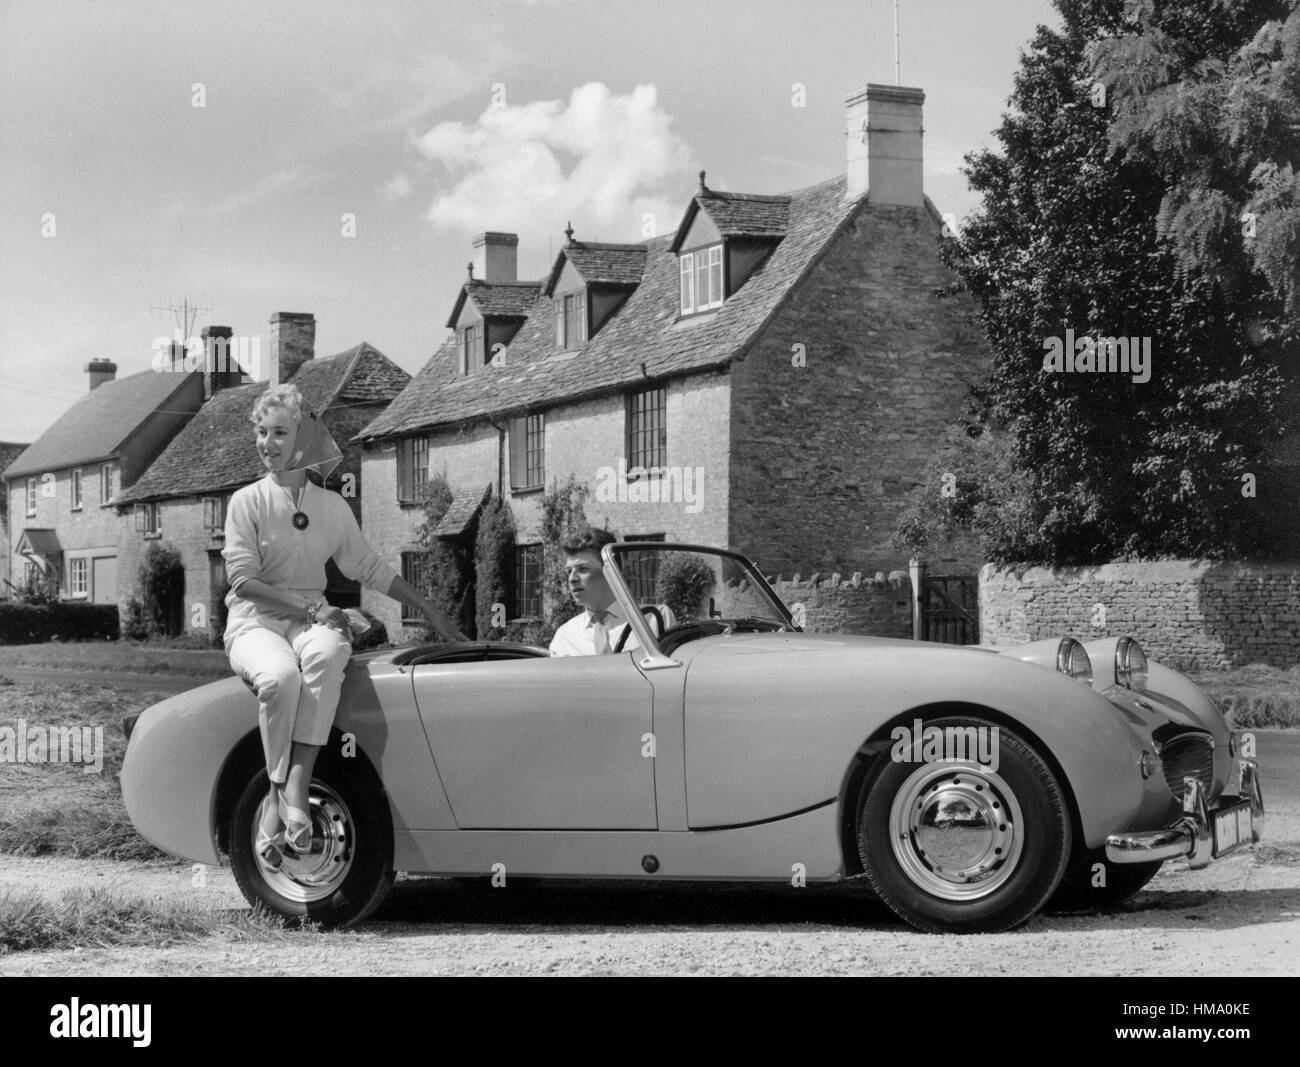 1958 Austin - Healey Sprite Stockbild